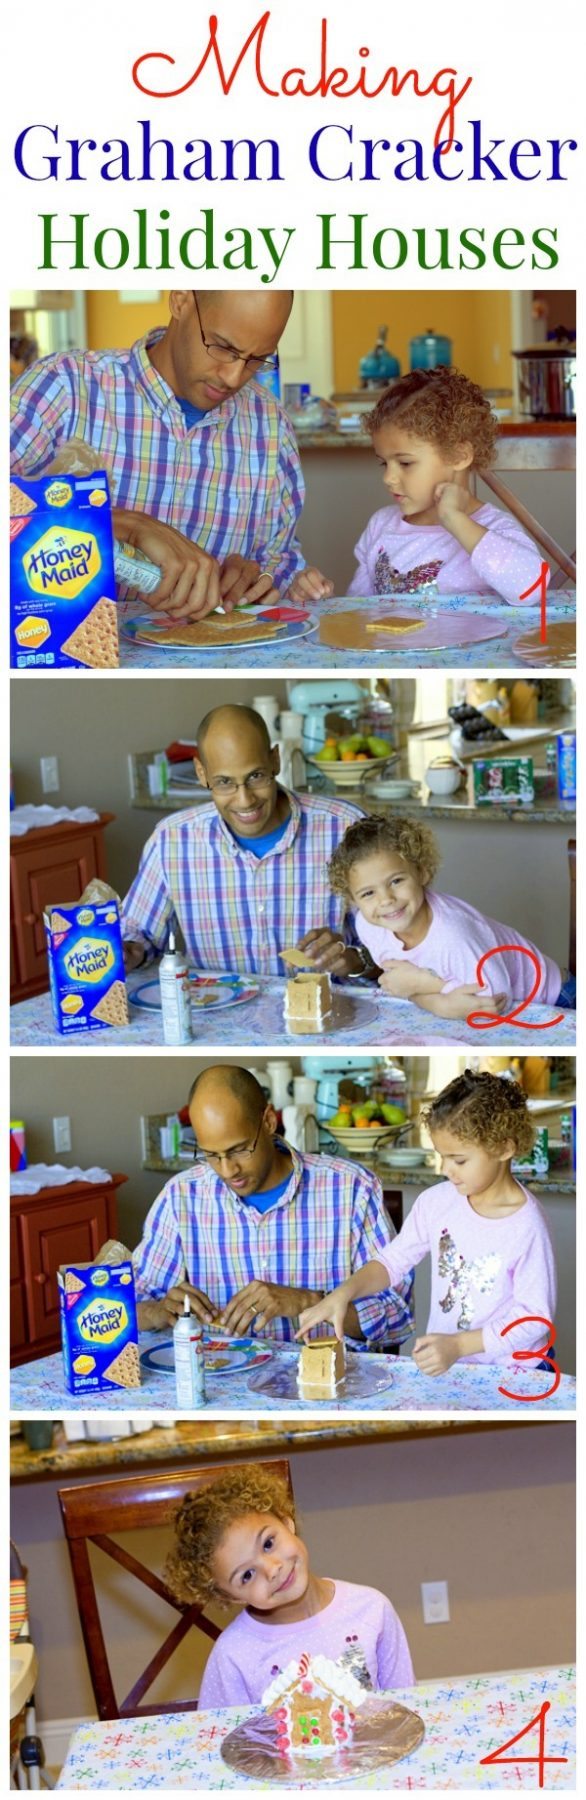 Picture tutorial for how to make Graham Cracker Gingerbread Houses.